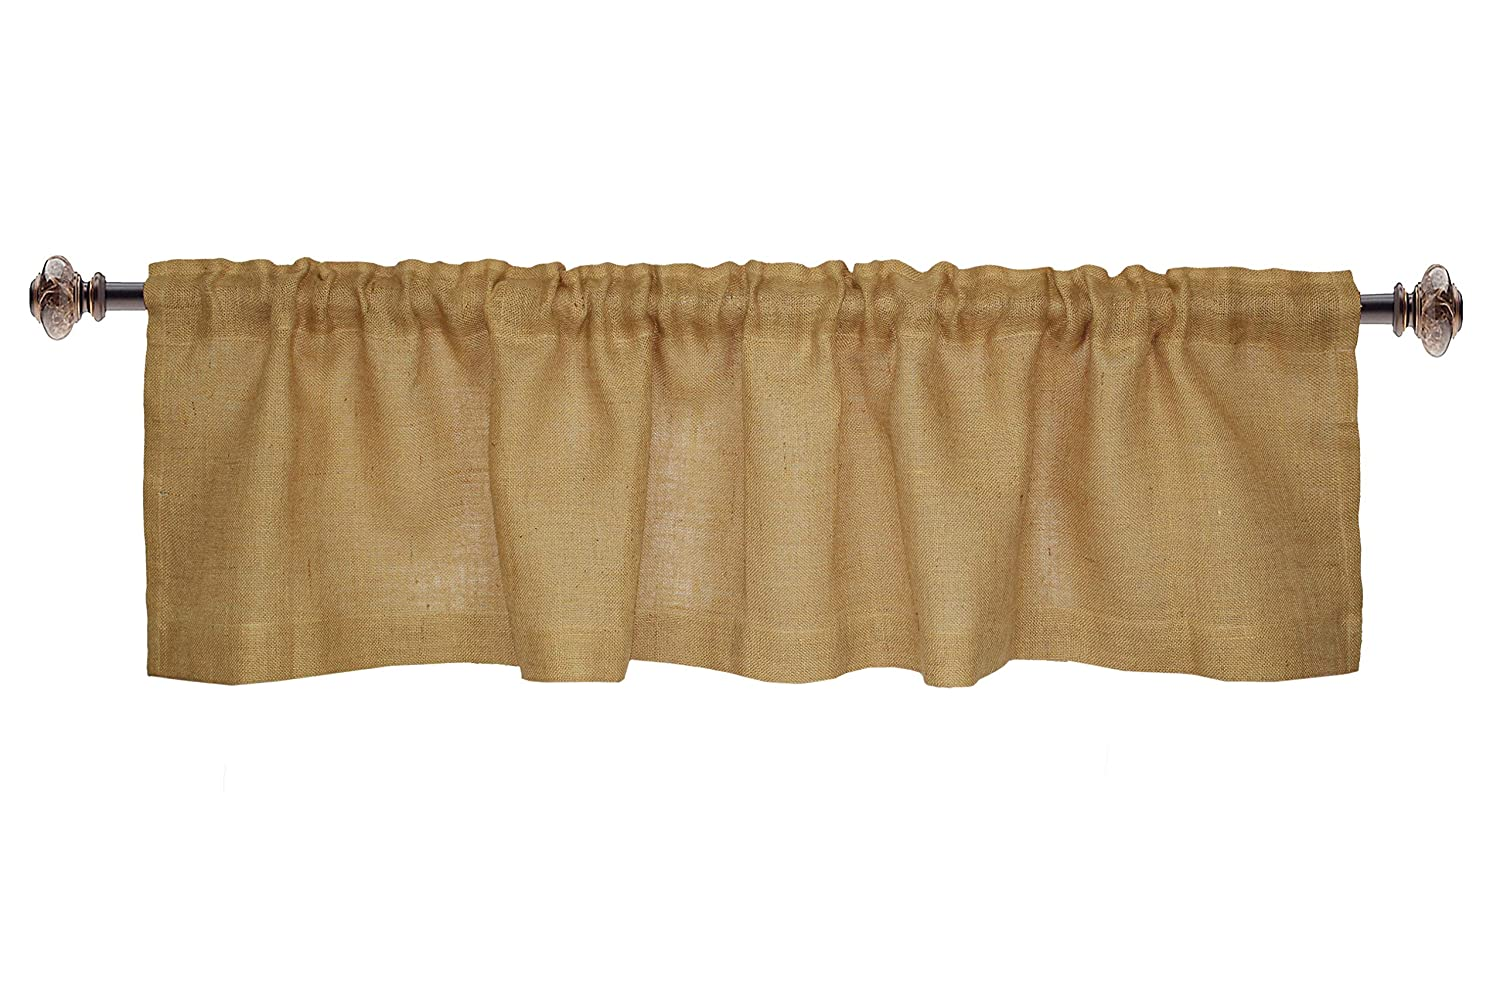 COTTON CRAFT -2 Piece 100% Jute Burlap Window Valance Set in Color Natural - Size 72 Inch by 16 Inch - Made from 100% Natural Jute